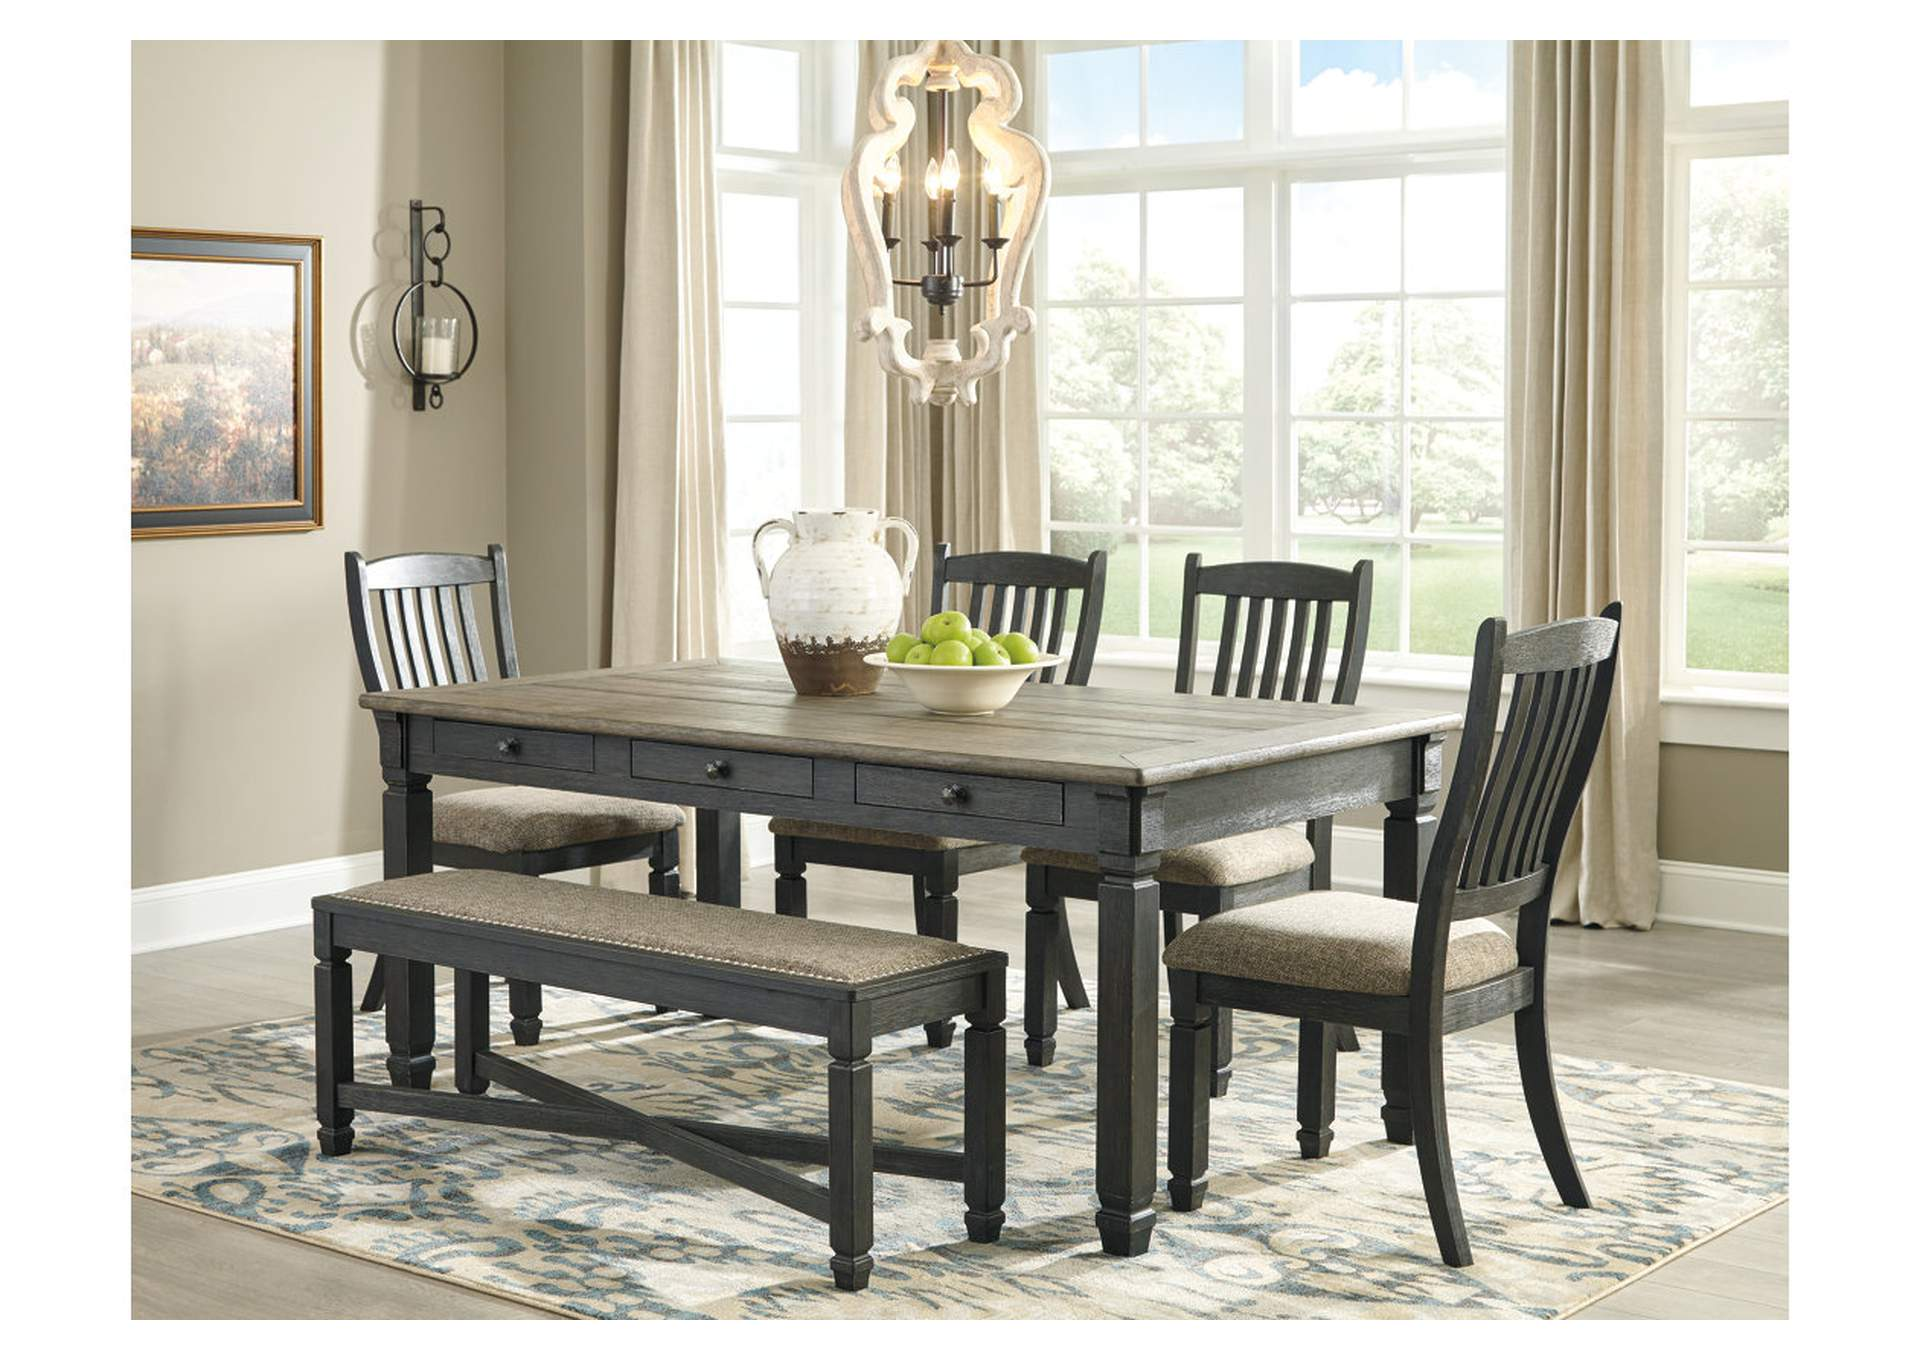 Tyler Creek Dining Table w/4 Chairs and Bench